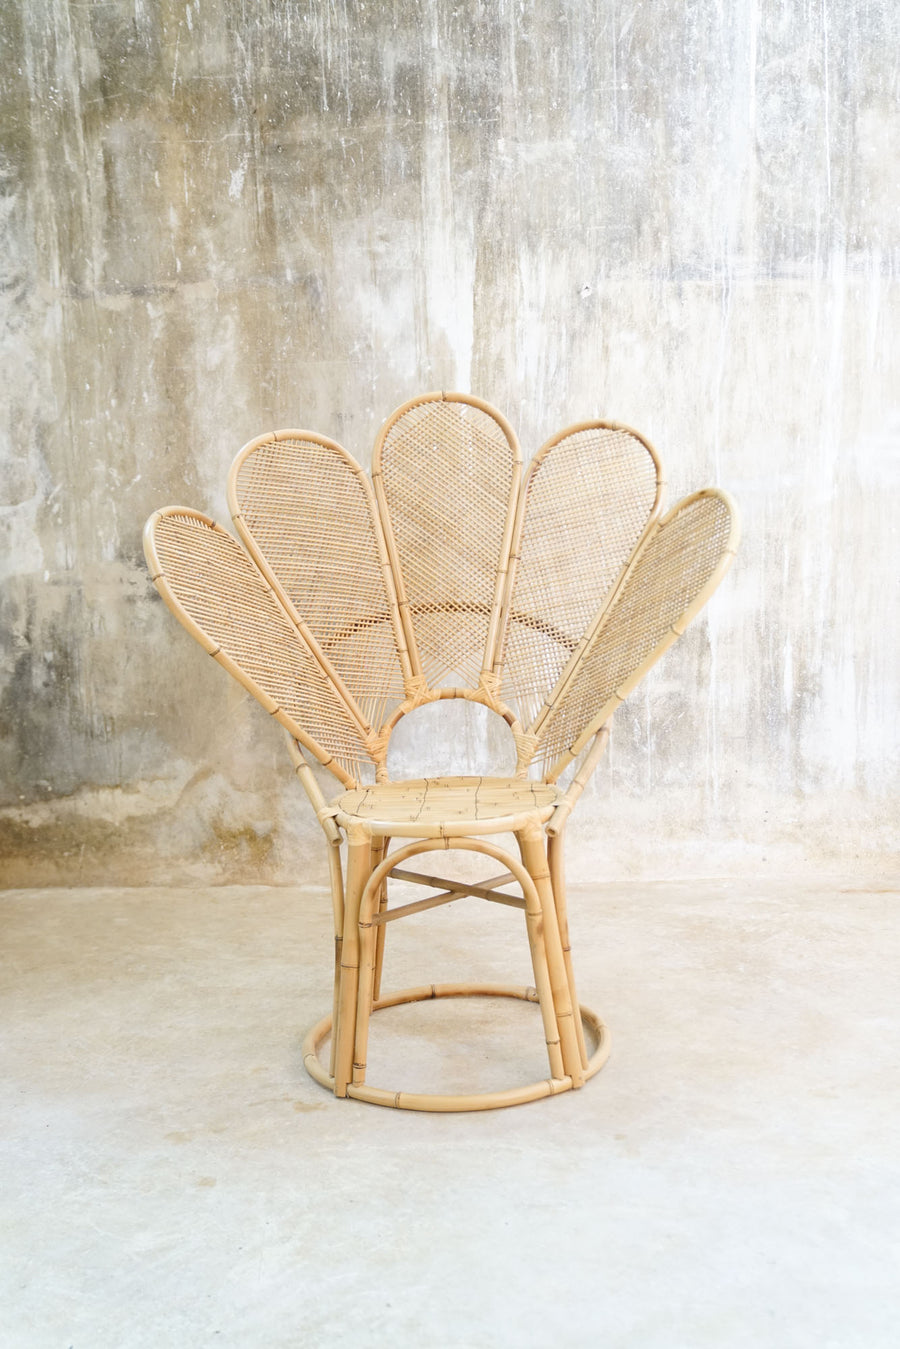 BAMBOO FLOWER CHAIR